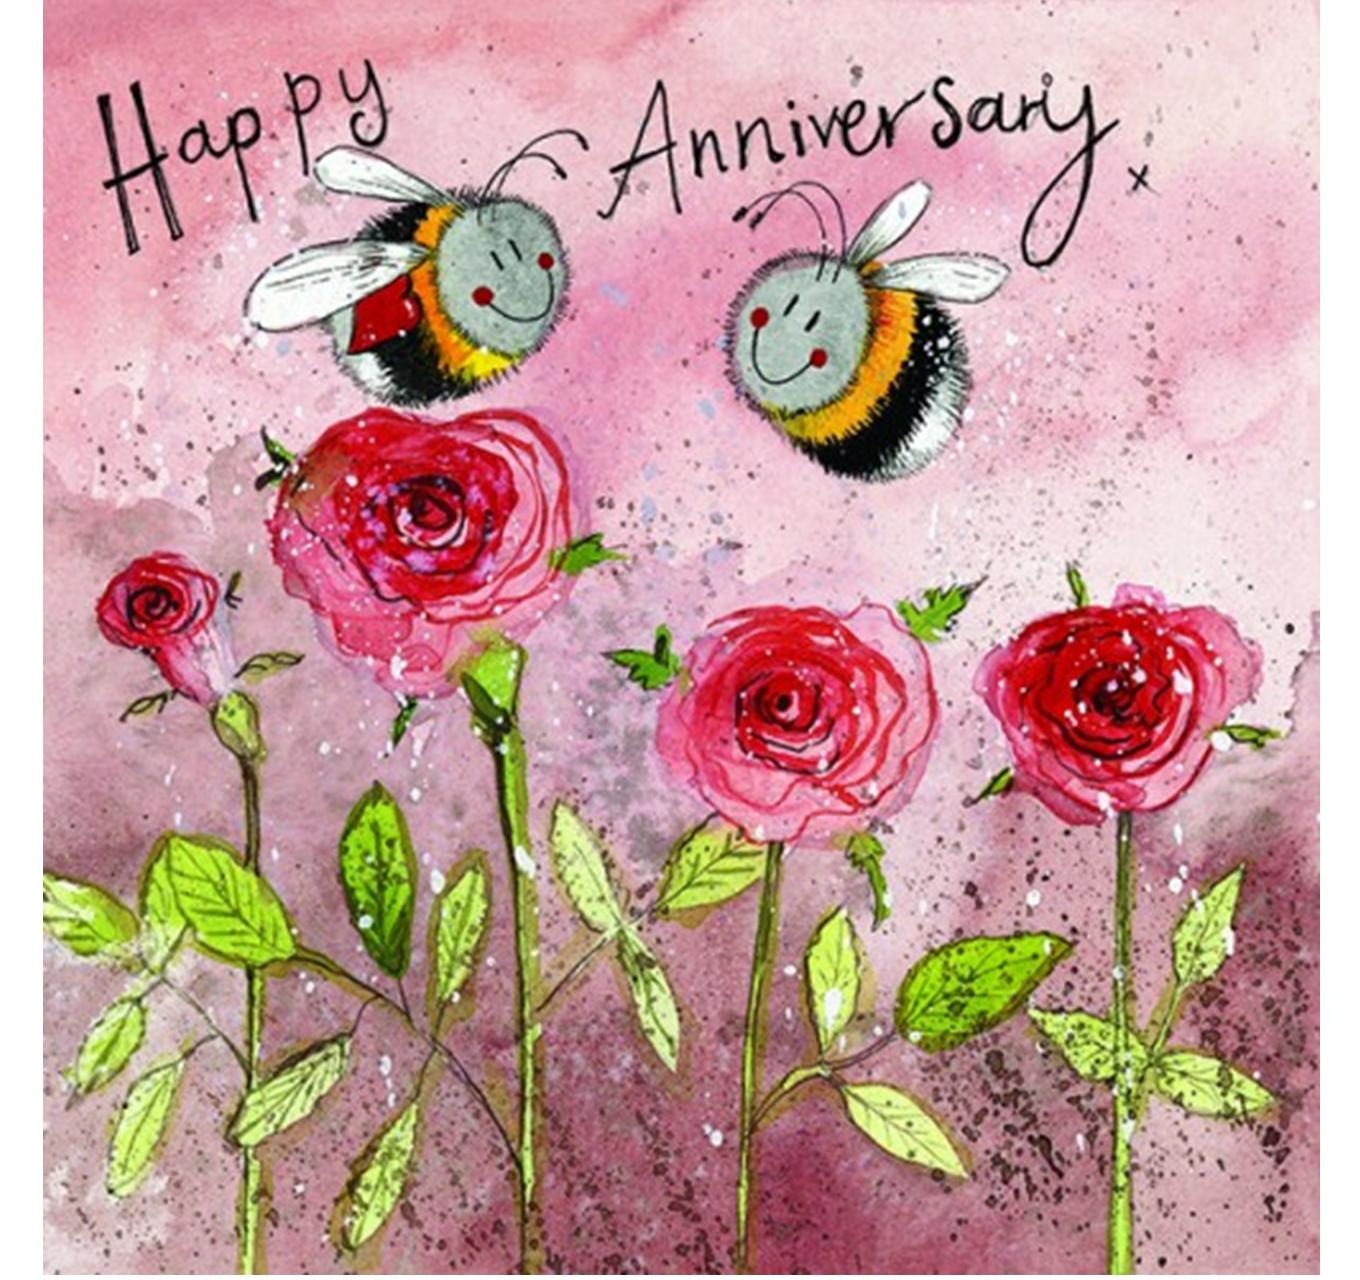 Bees & Roses Anniversary Card